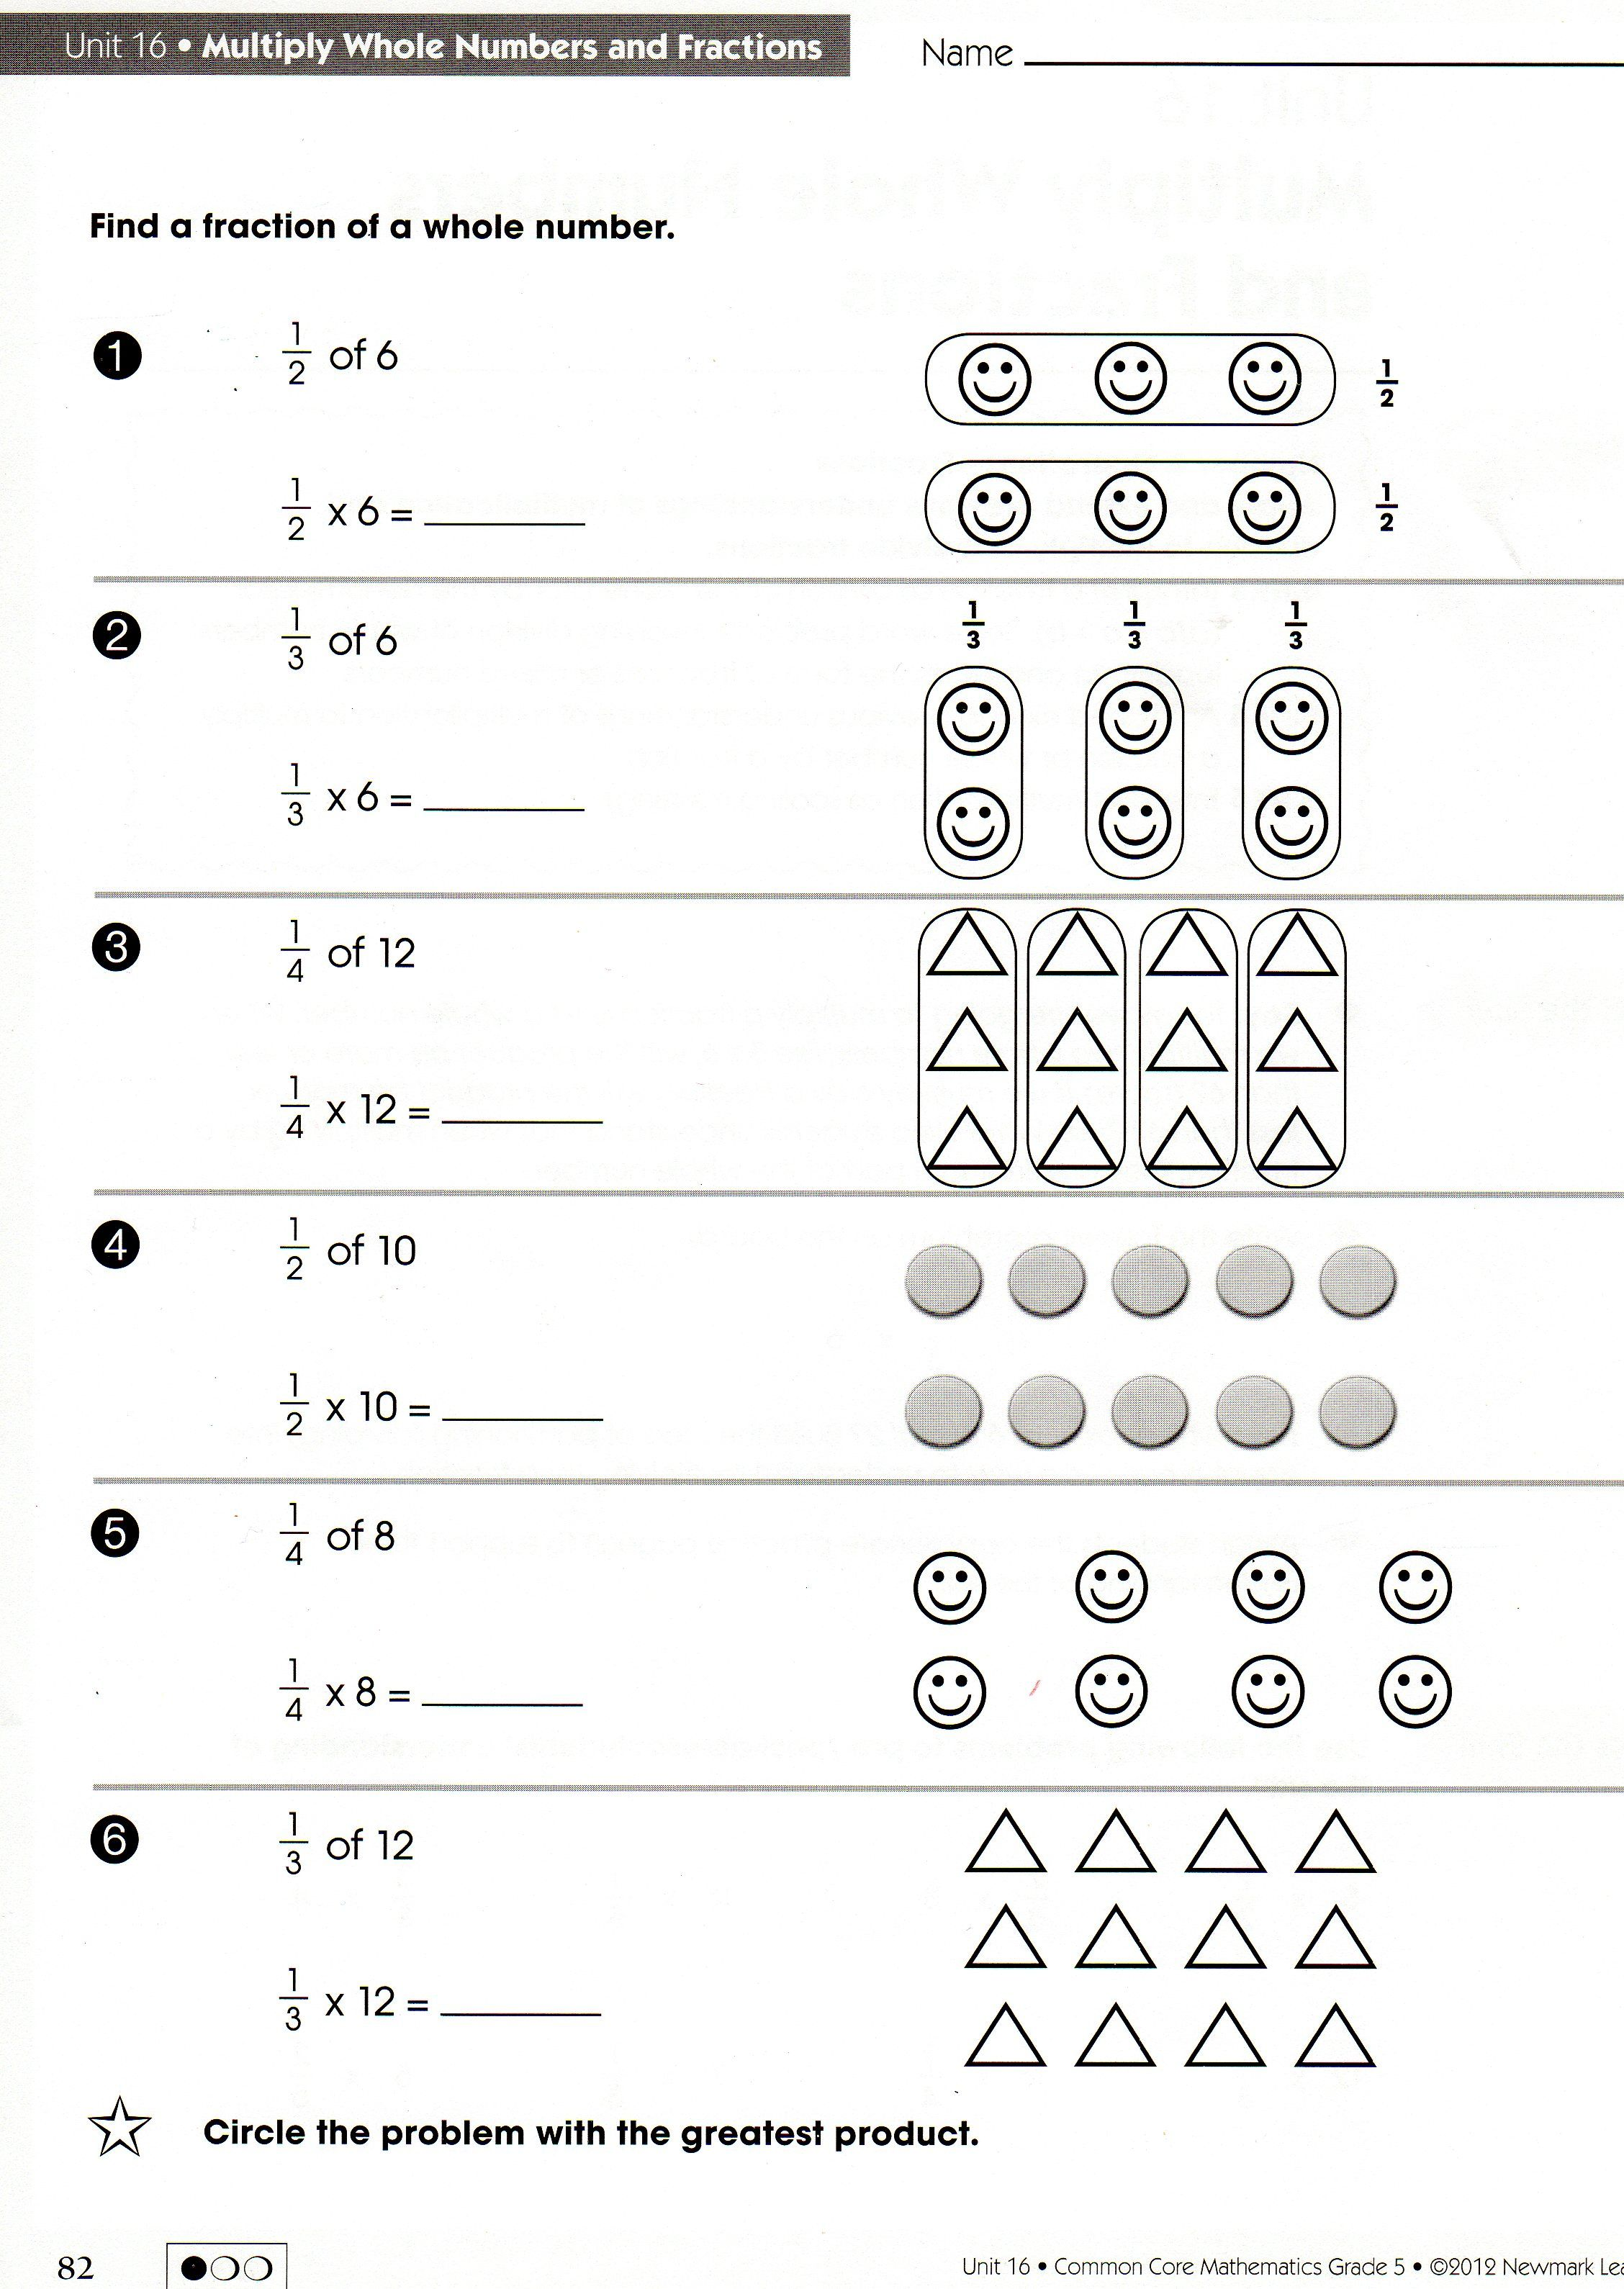 worksheet Multiplying Fractions By Whole Numbers Worksheets 4th Grade how to divide fractions with whole numbers printable counting dividing by worksheets math adding d580952107232838ebe7f1612eae5a3b work